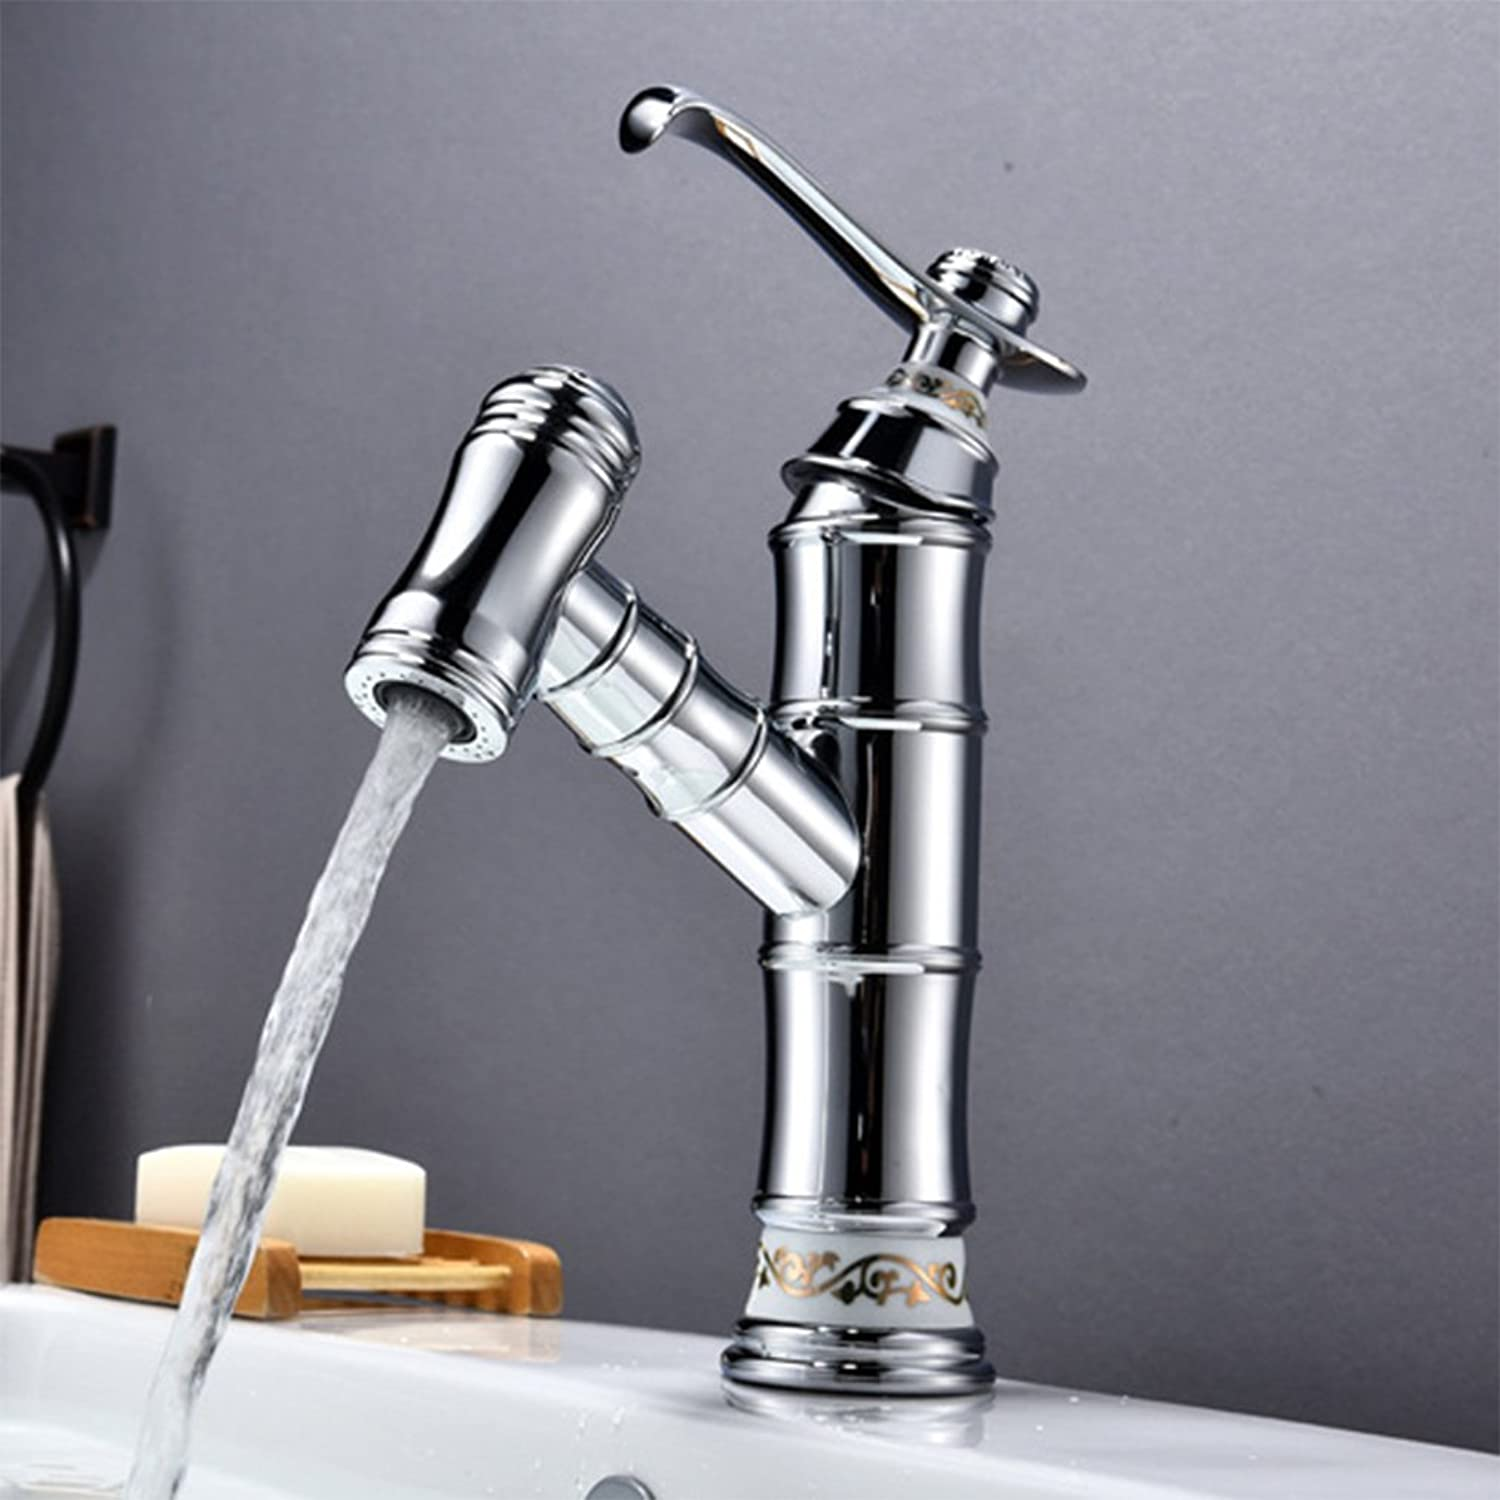 QJIAXING Basin Faucet All Copper Pull Type Black Patina Chrome Plated Telescopic Hot And Cold Mixed Taps Bathroom Sink 2 Kind Of Water Outlet Methods,Chrome